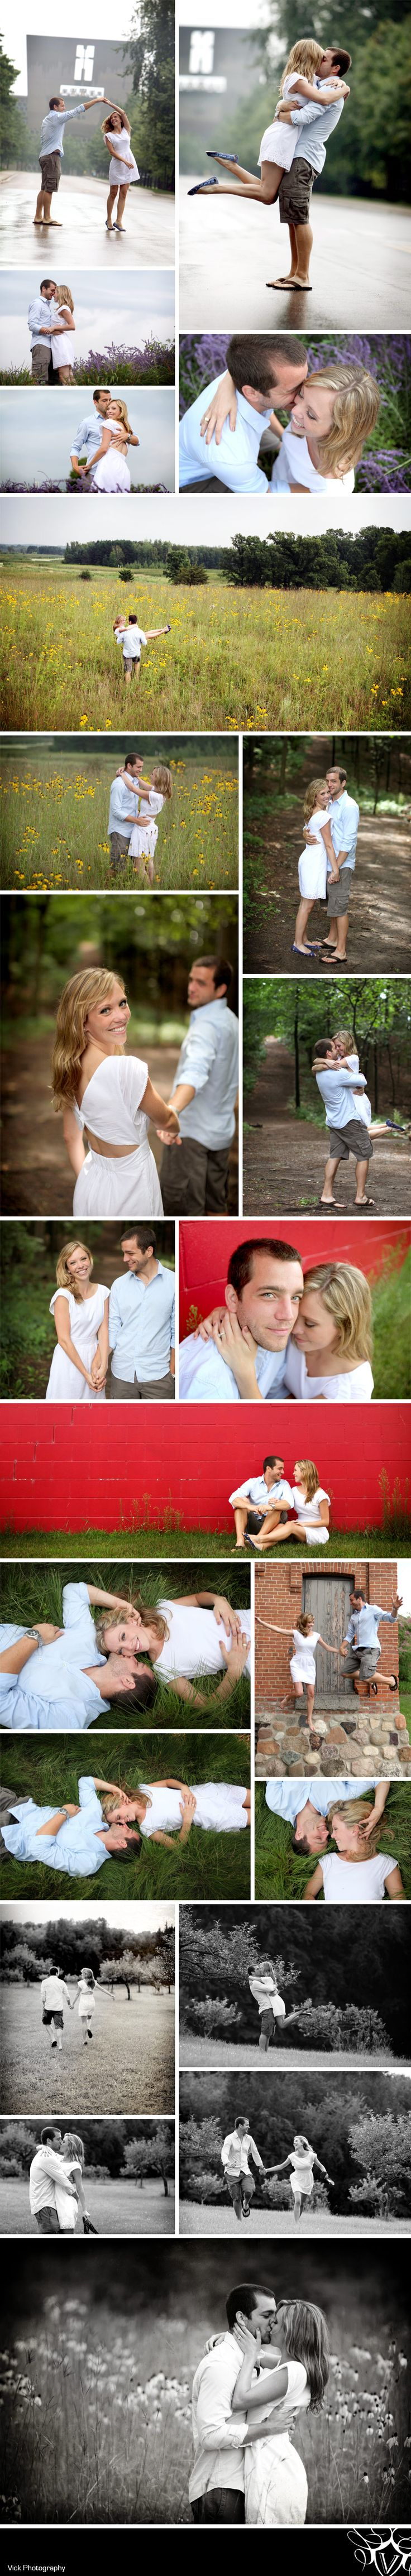 engagement photo ideas- I really like most of these poses